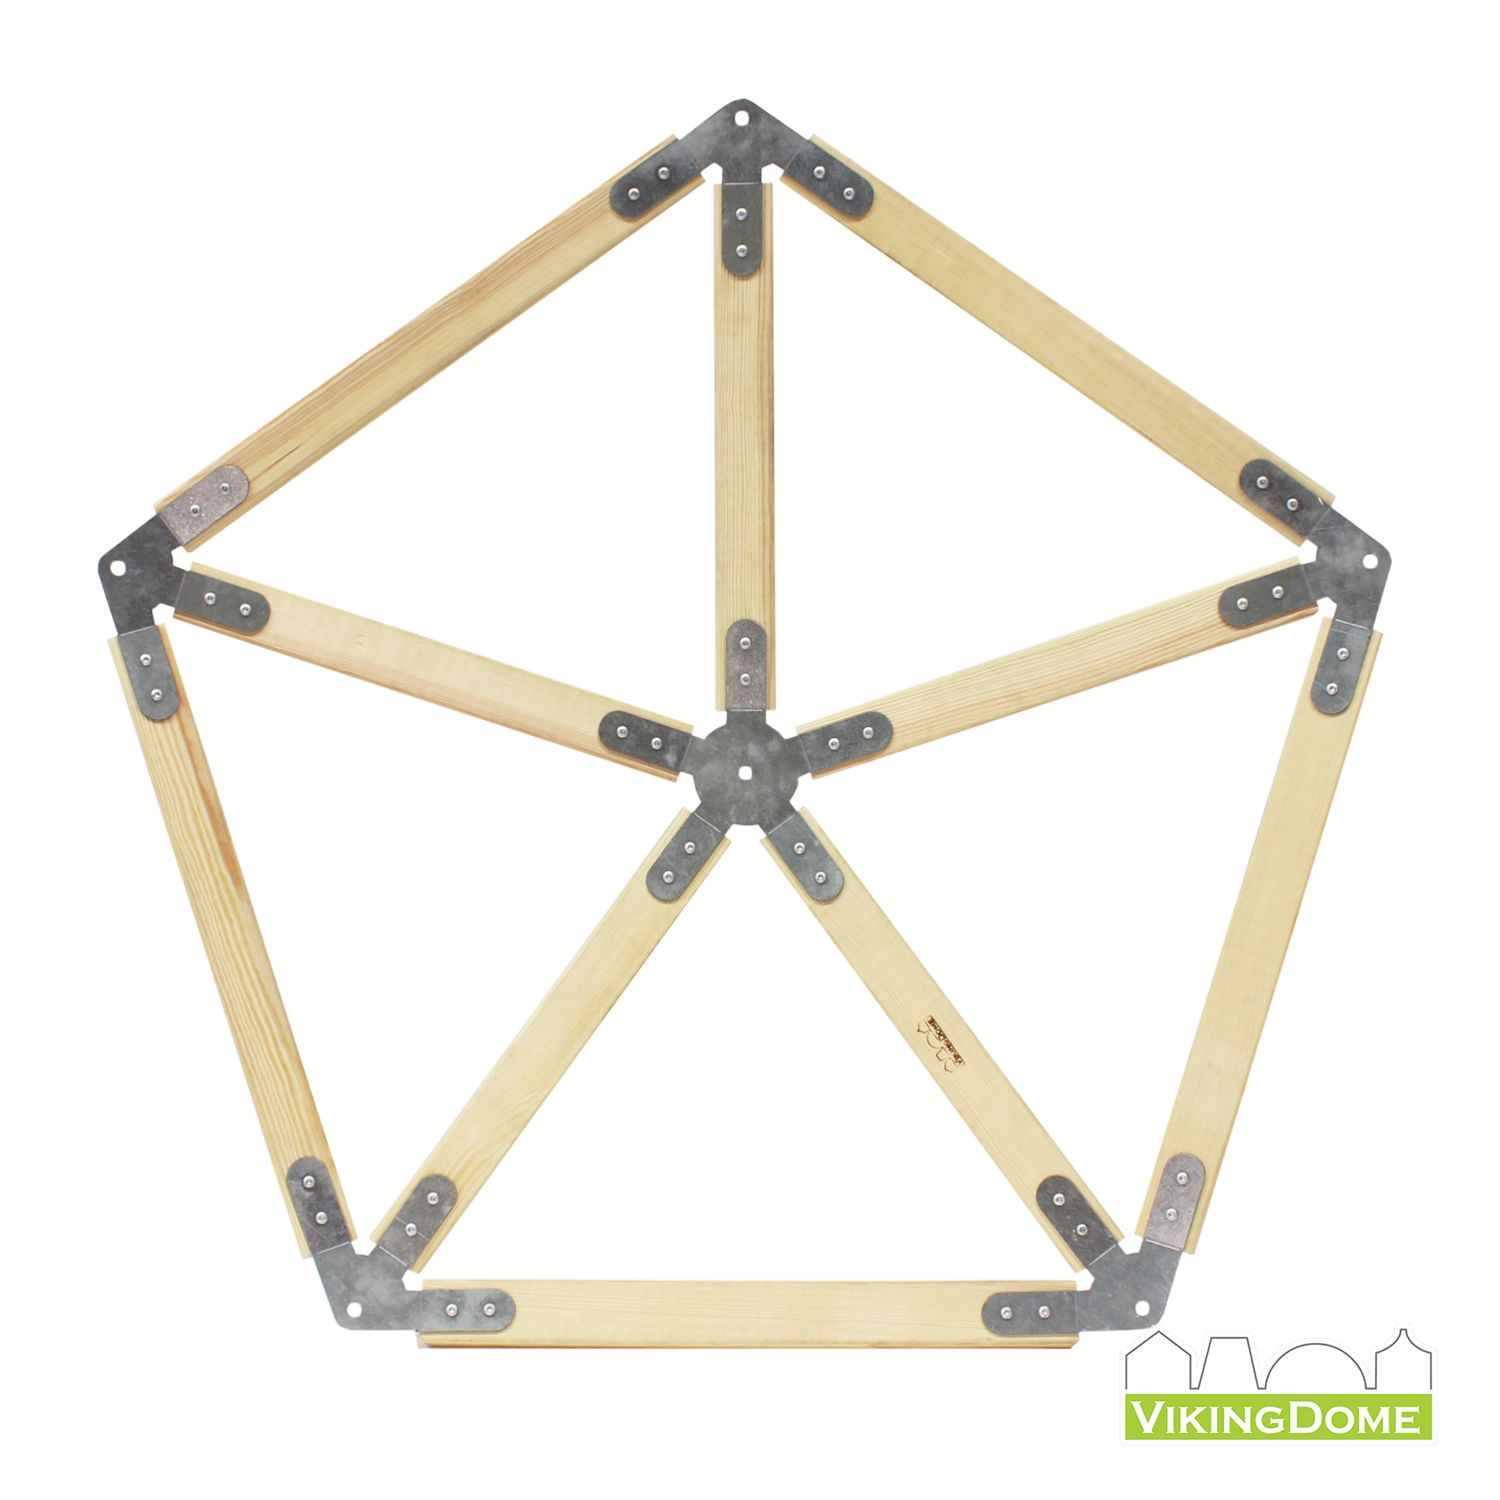 Vikingdome Dome Frame System Star With Wood 5